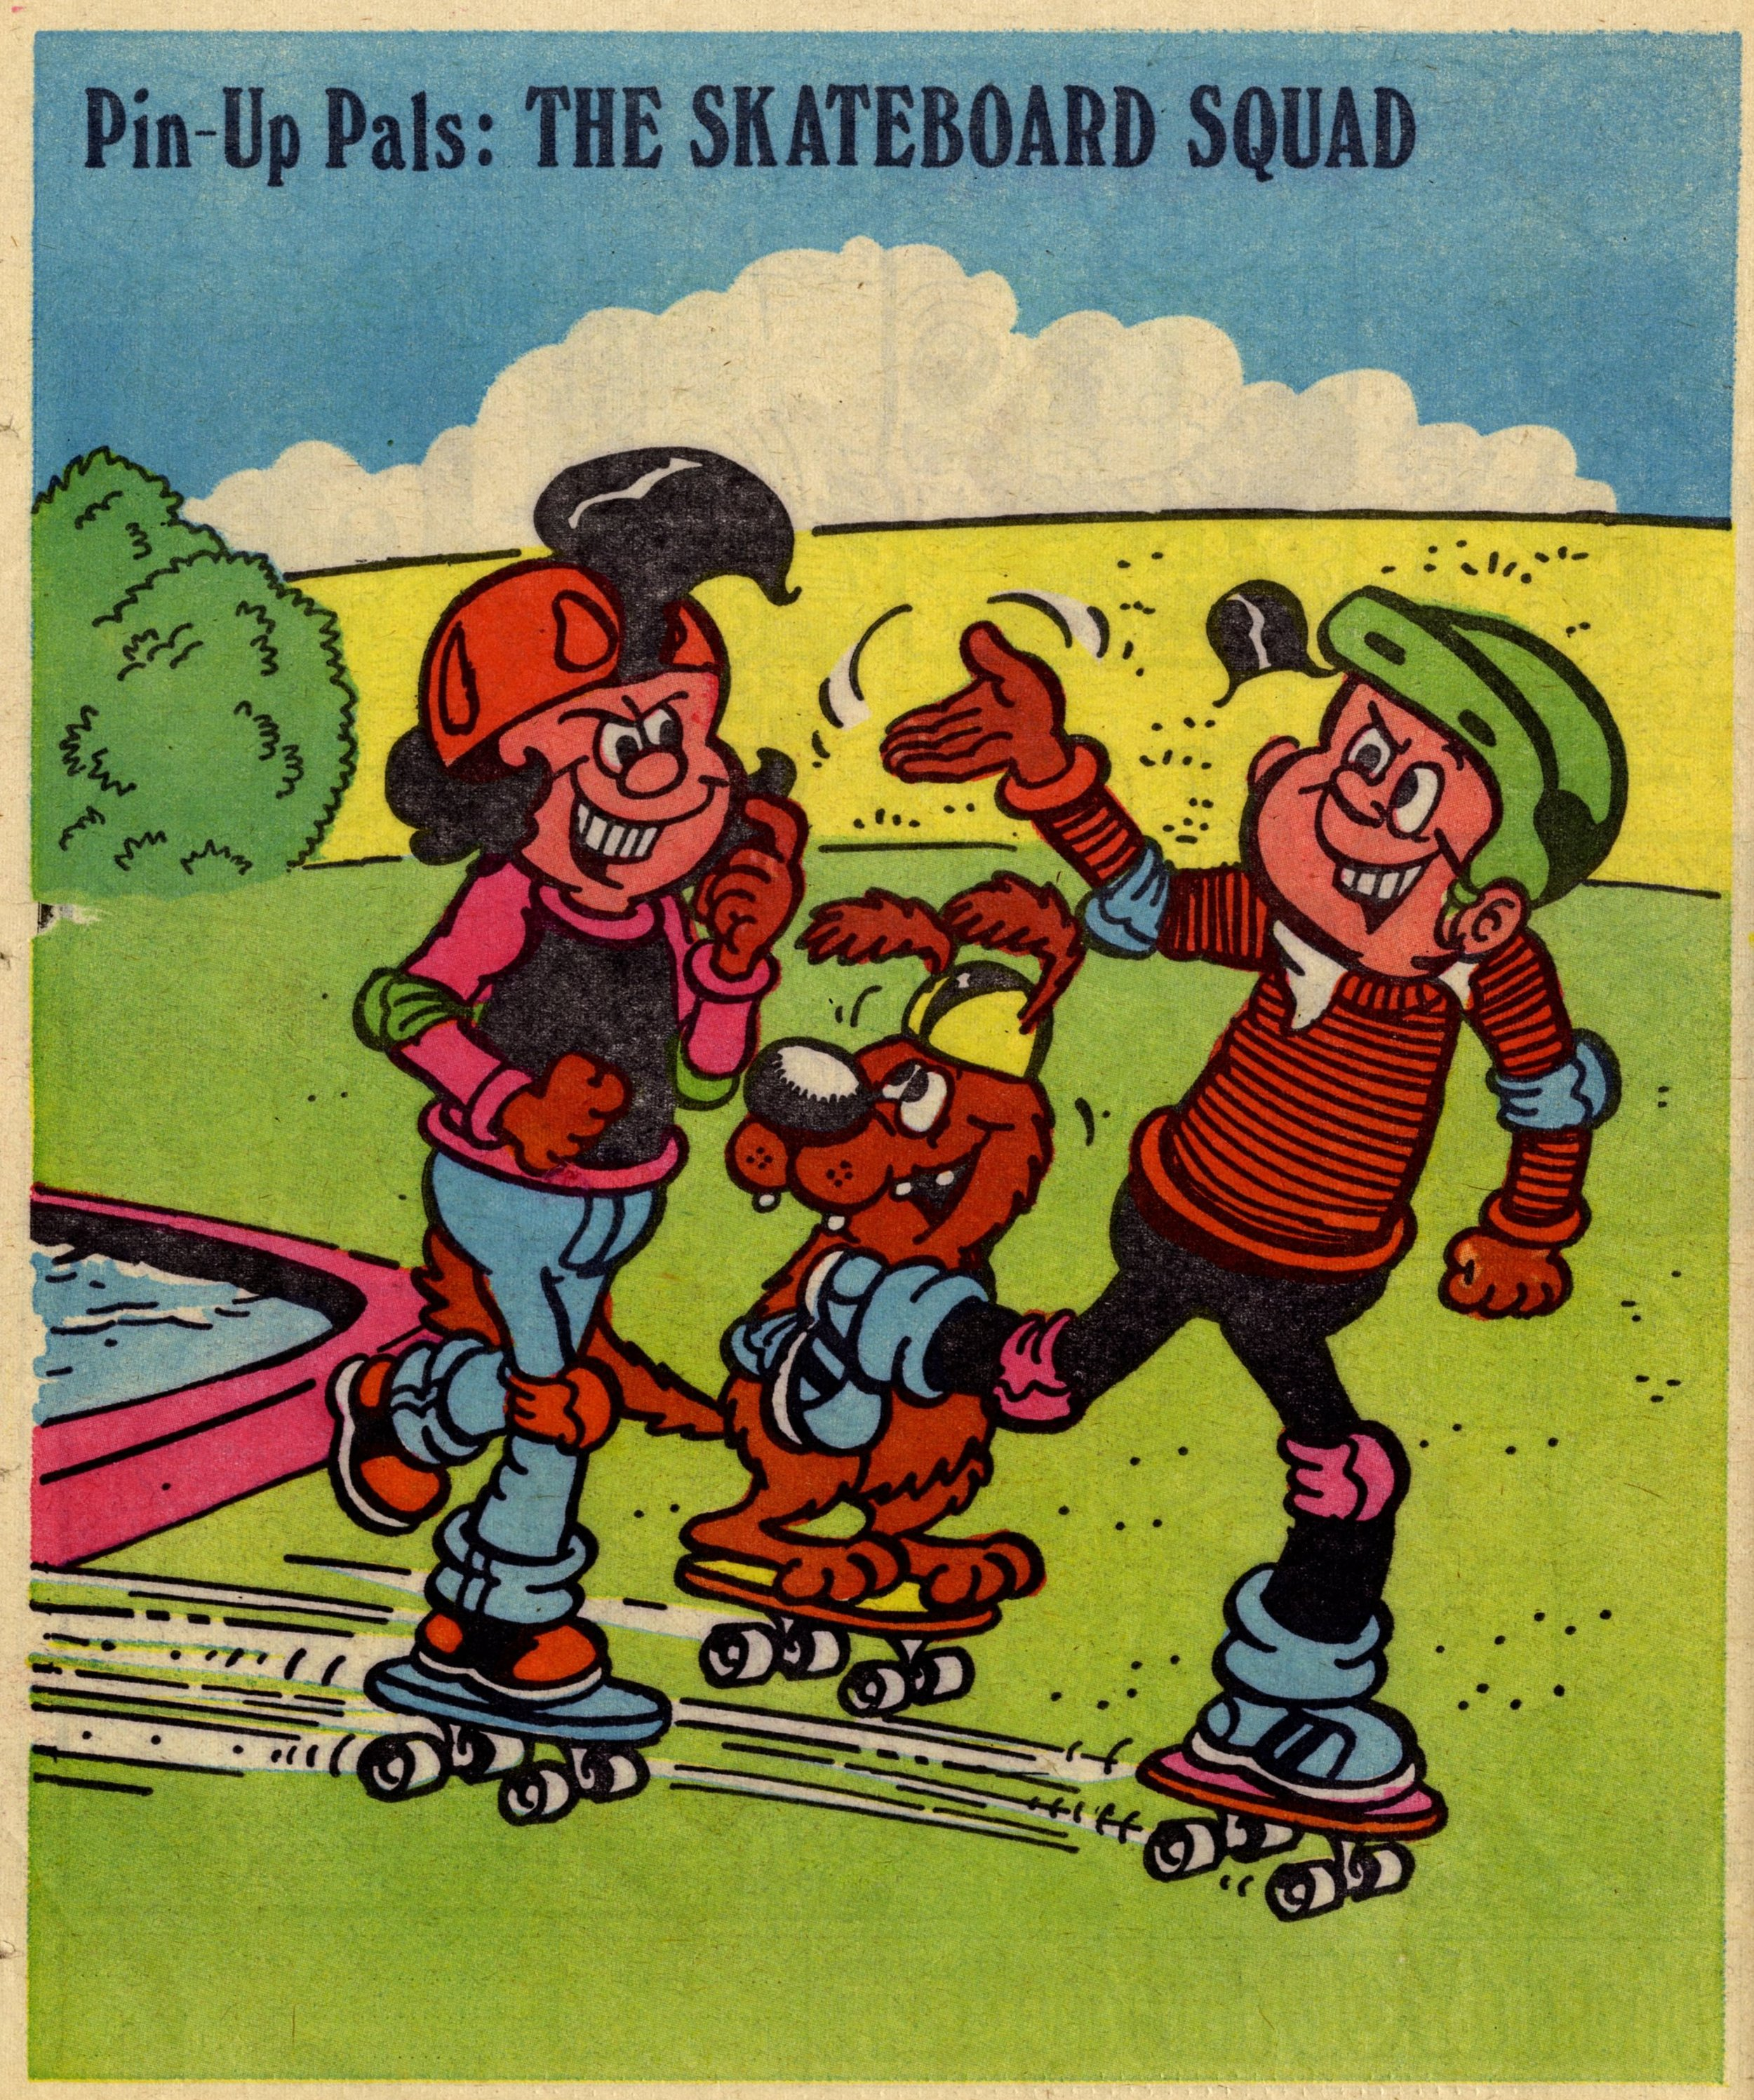 Pin-up Pal: The Skateboard Squad (artist Frank McDiarmid), 31 March 1979